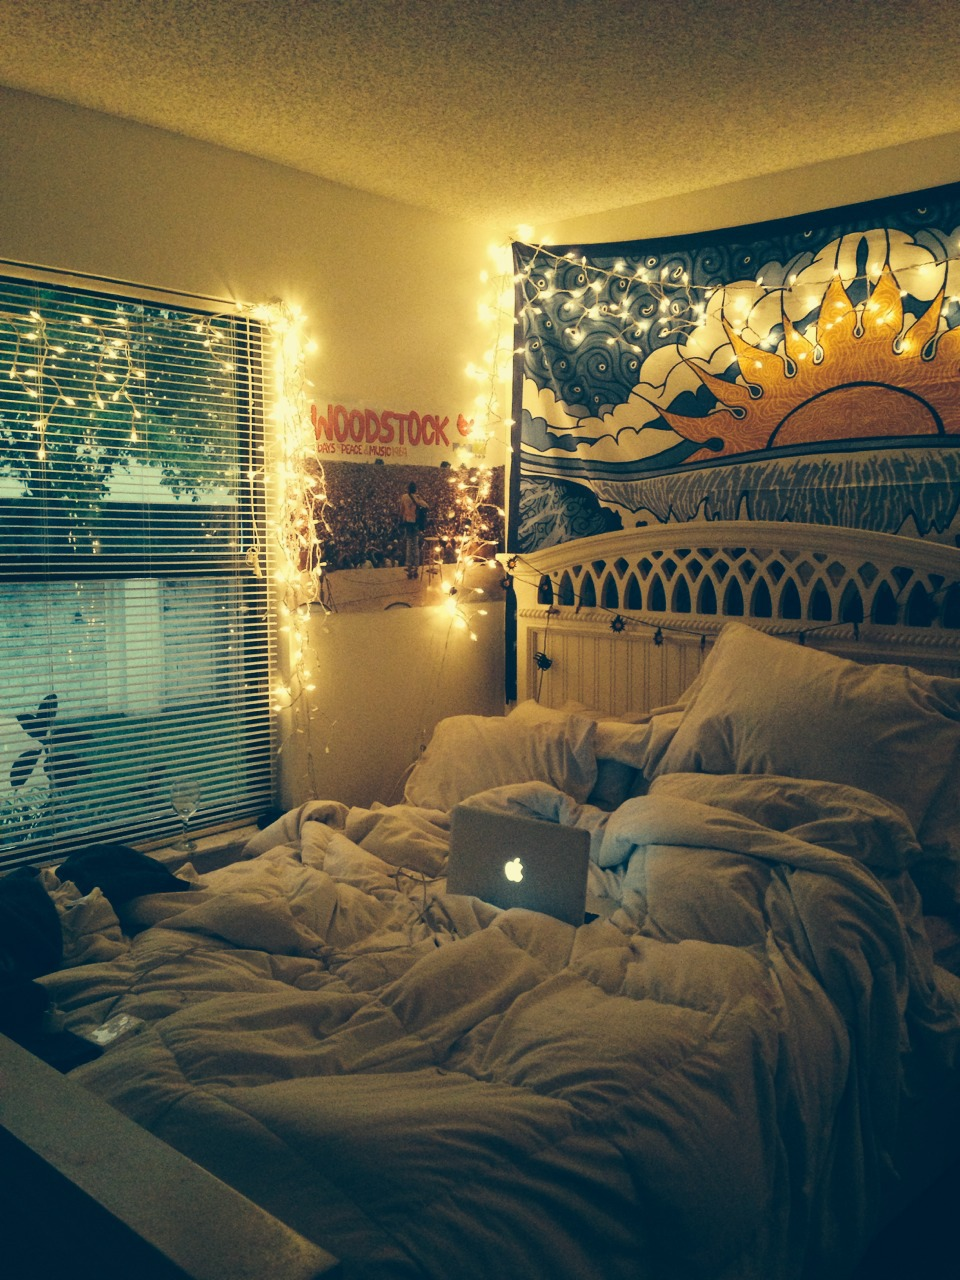 Outdoor bed tumblr - 43 Images About Tumblr Room On We Heart It See More About Bedroom Room And Bed